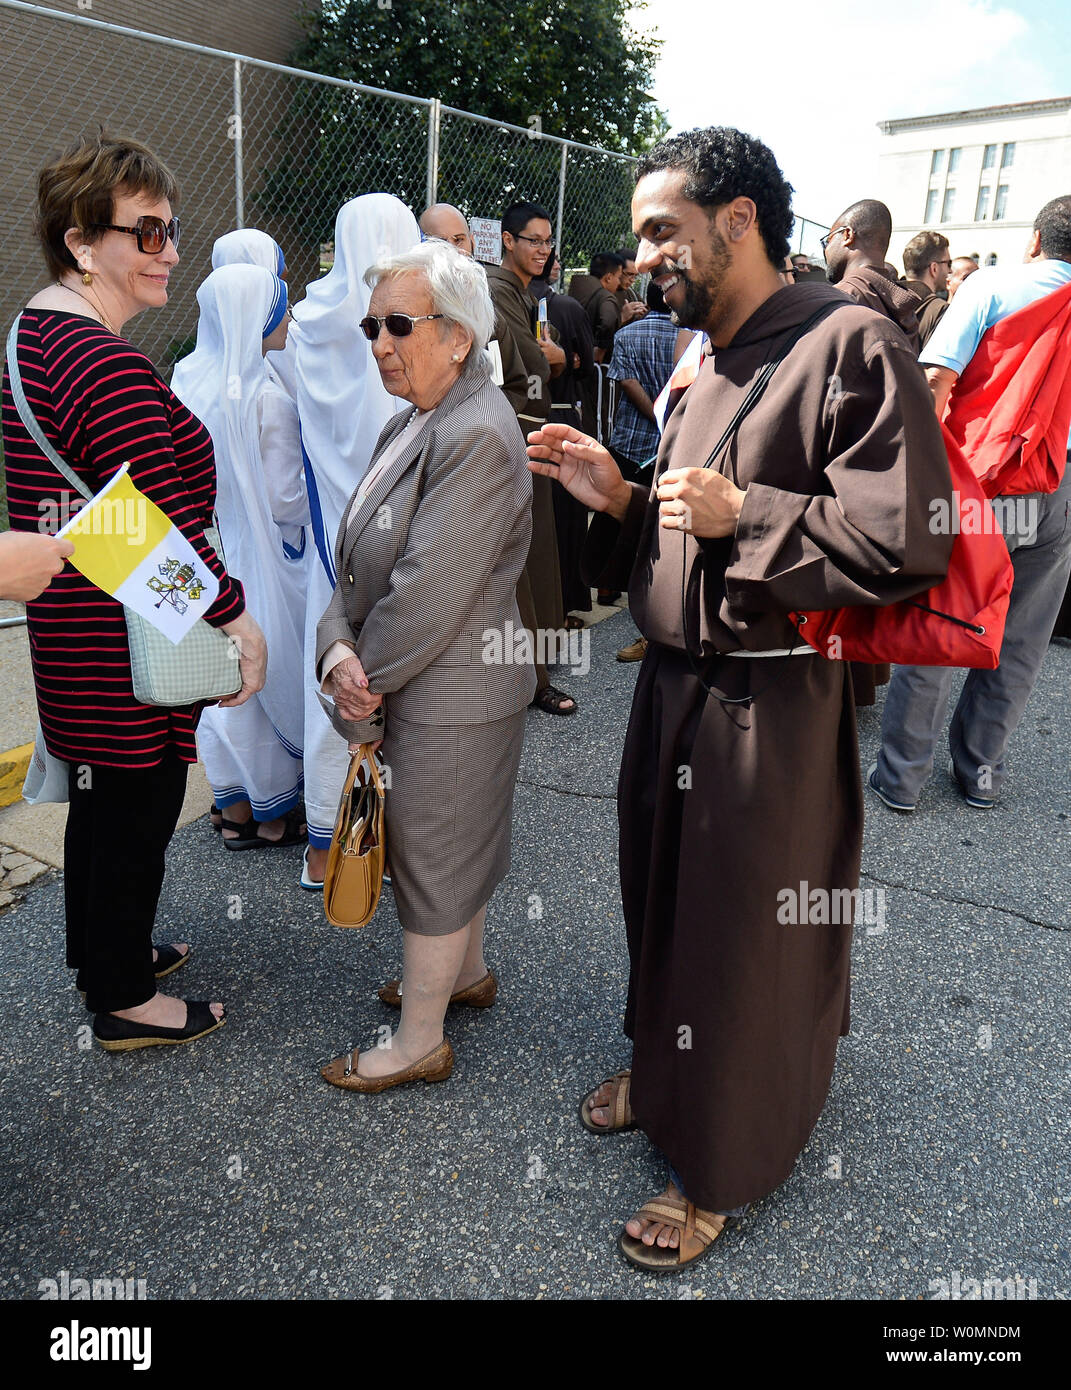 Pilgrims wait in a security line before Pope Francis delivers the delivers Canonization Mass of Blessed Junipero Serra at the Basilica of the National Shrine of the Immaculate Conception, on September 23, 2015, in Washington, DC. The Basilica is the largest Roman Catholic church in the United States. Photo by David Tulis/UPI Stock Photo